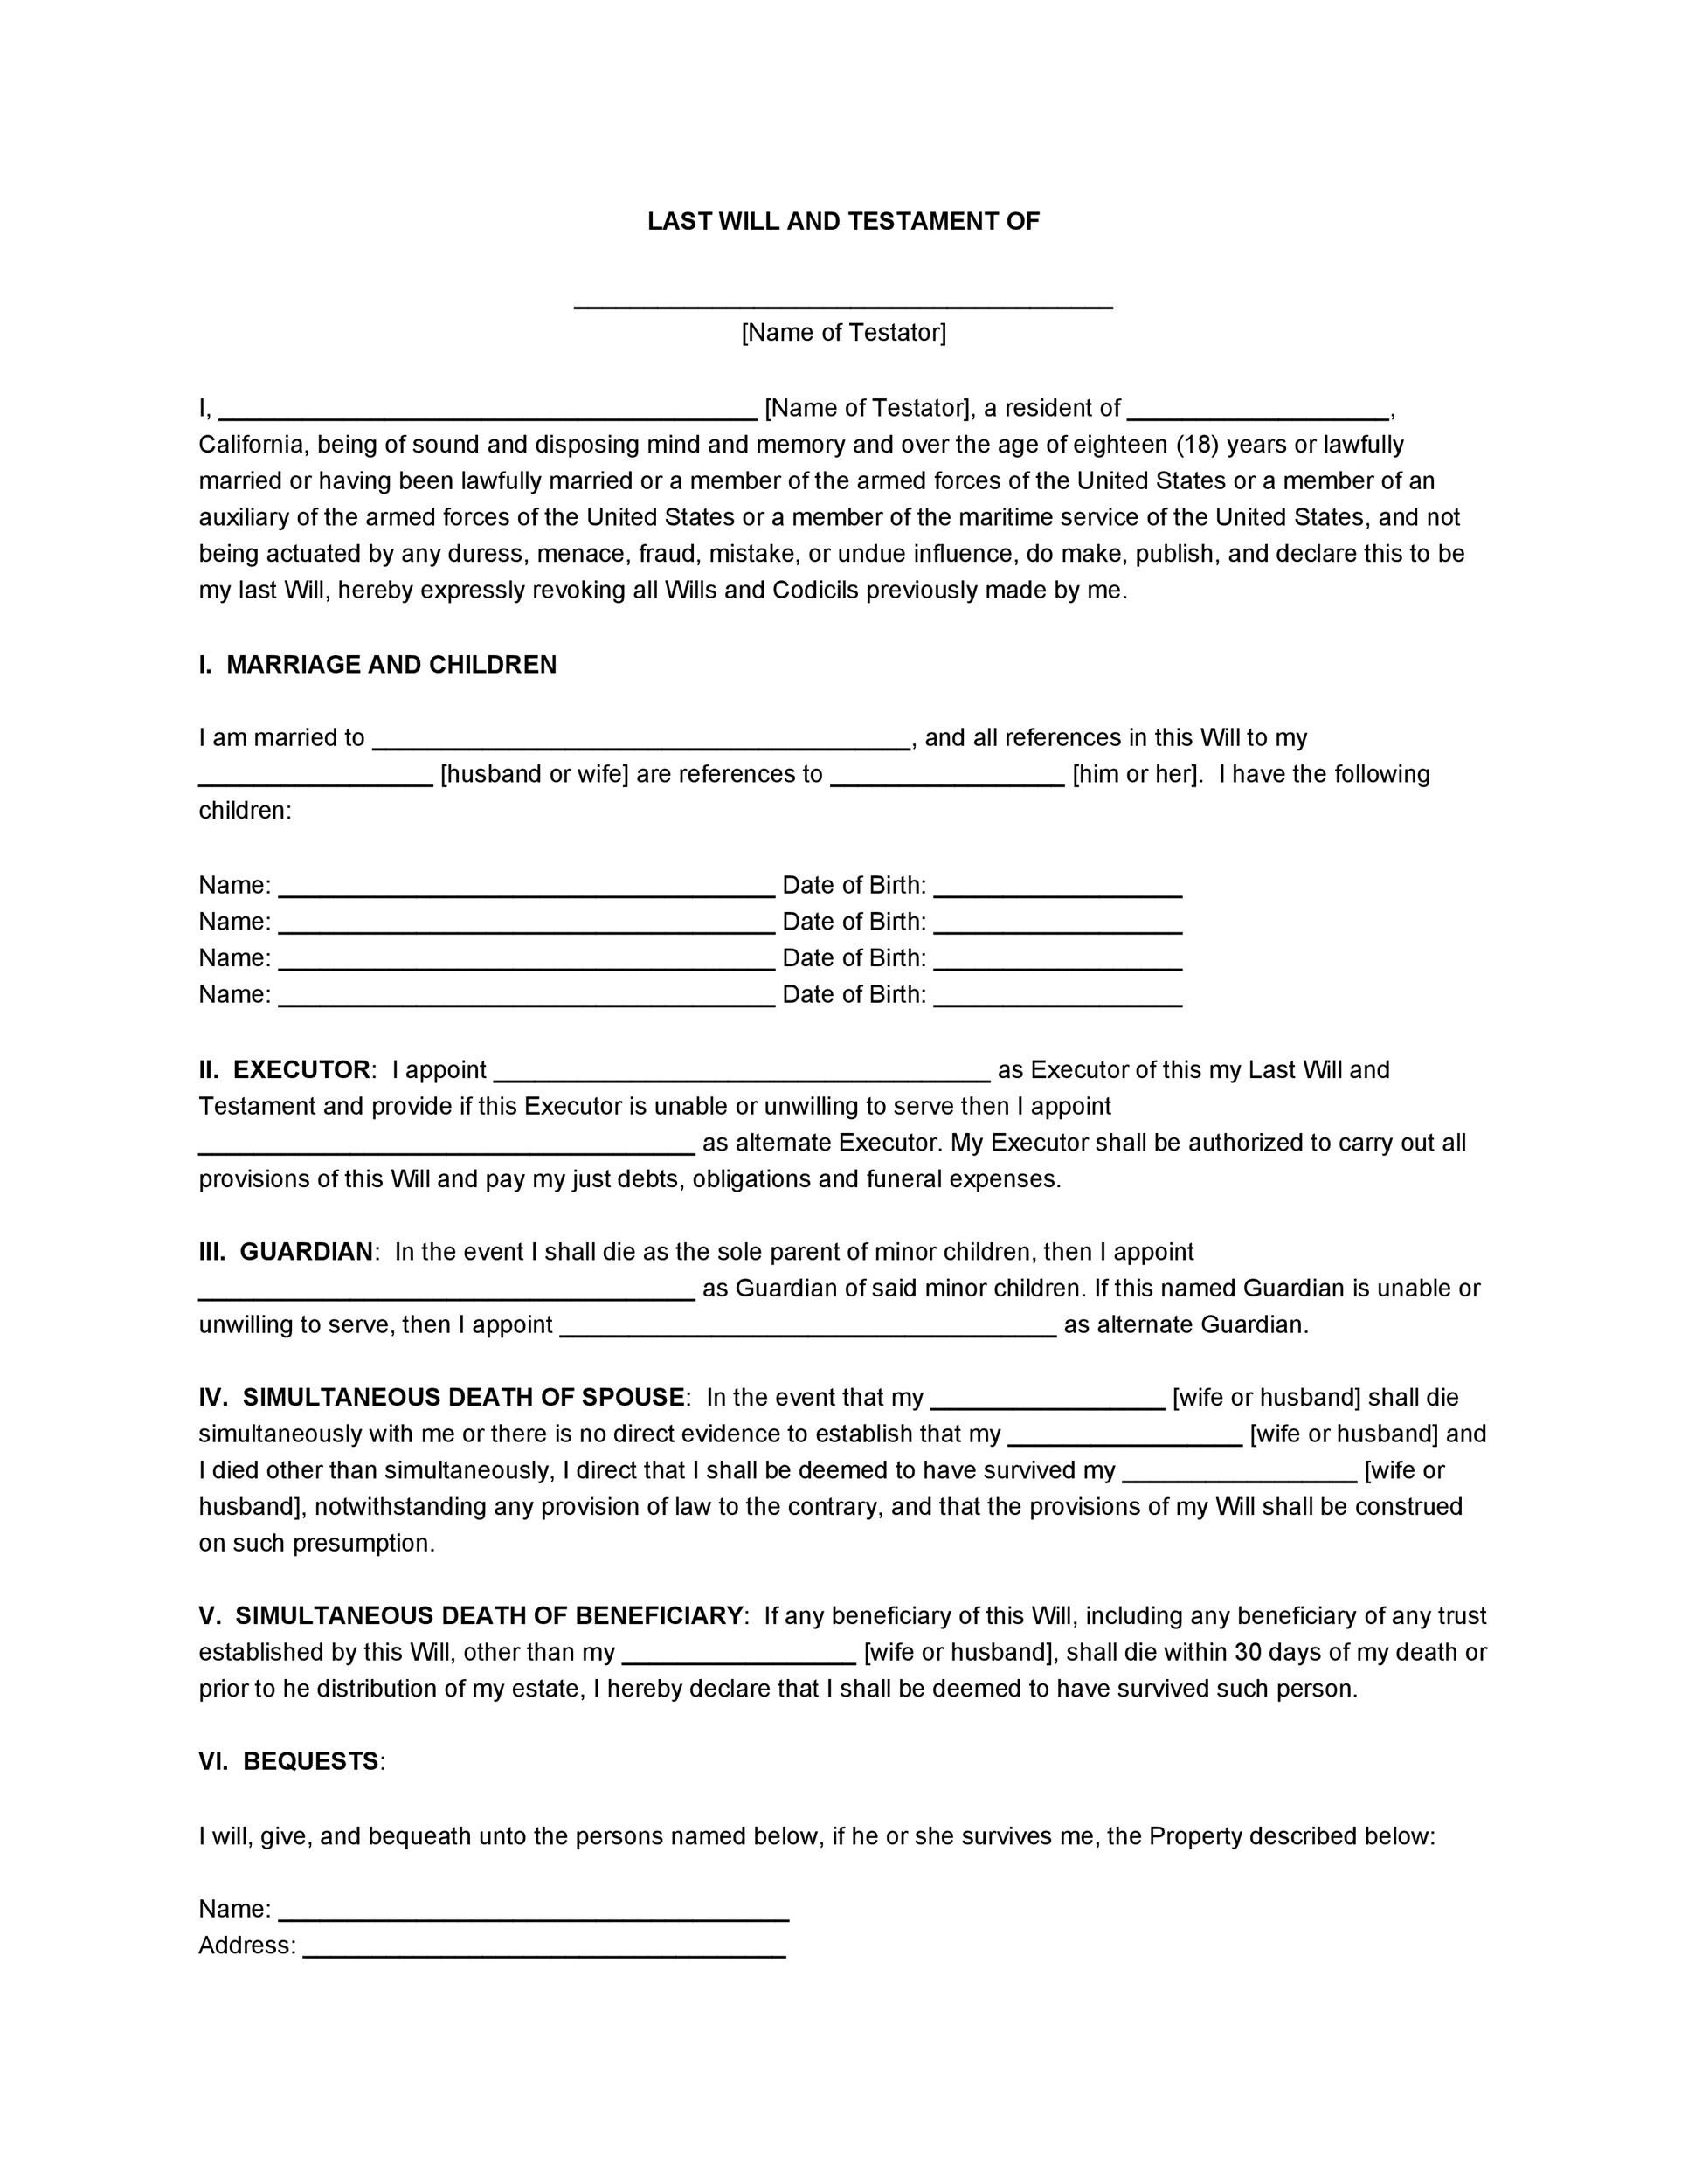 Free Last will and testament template 19